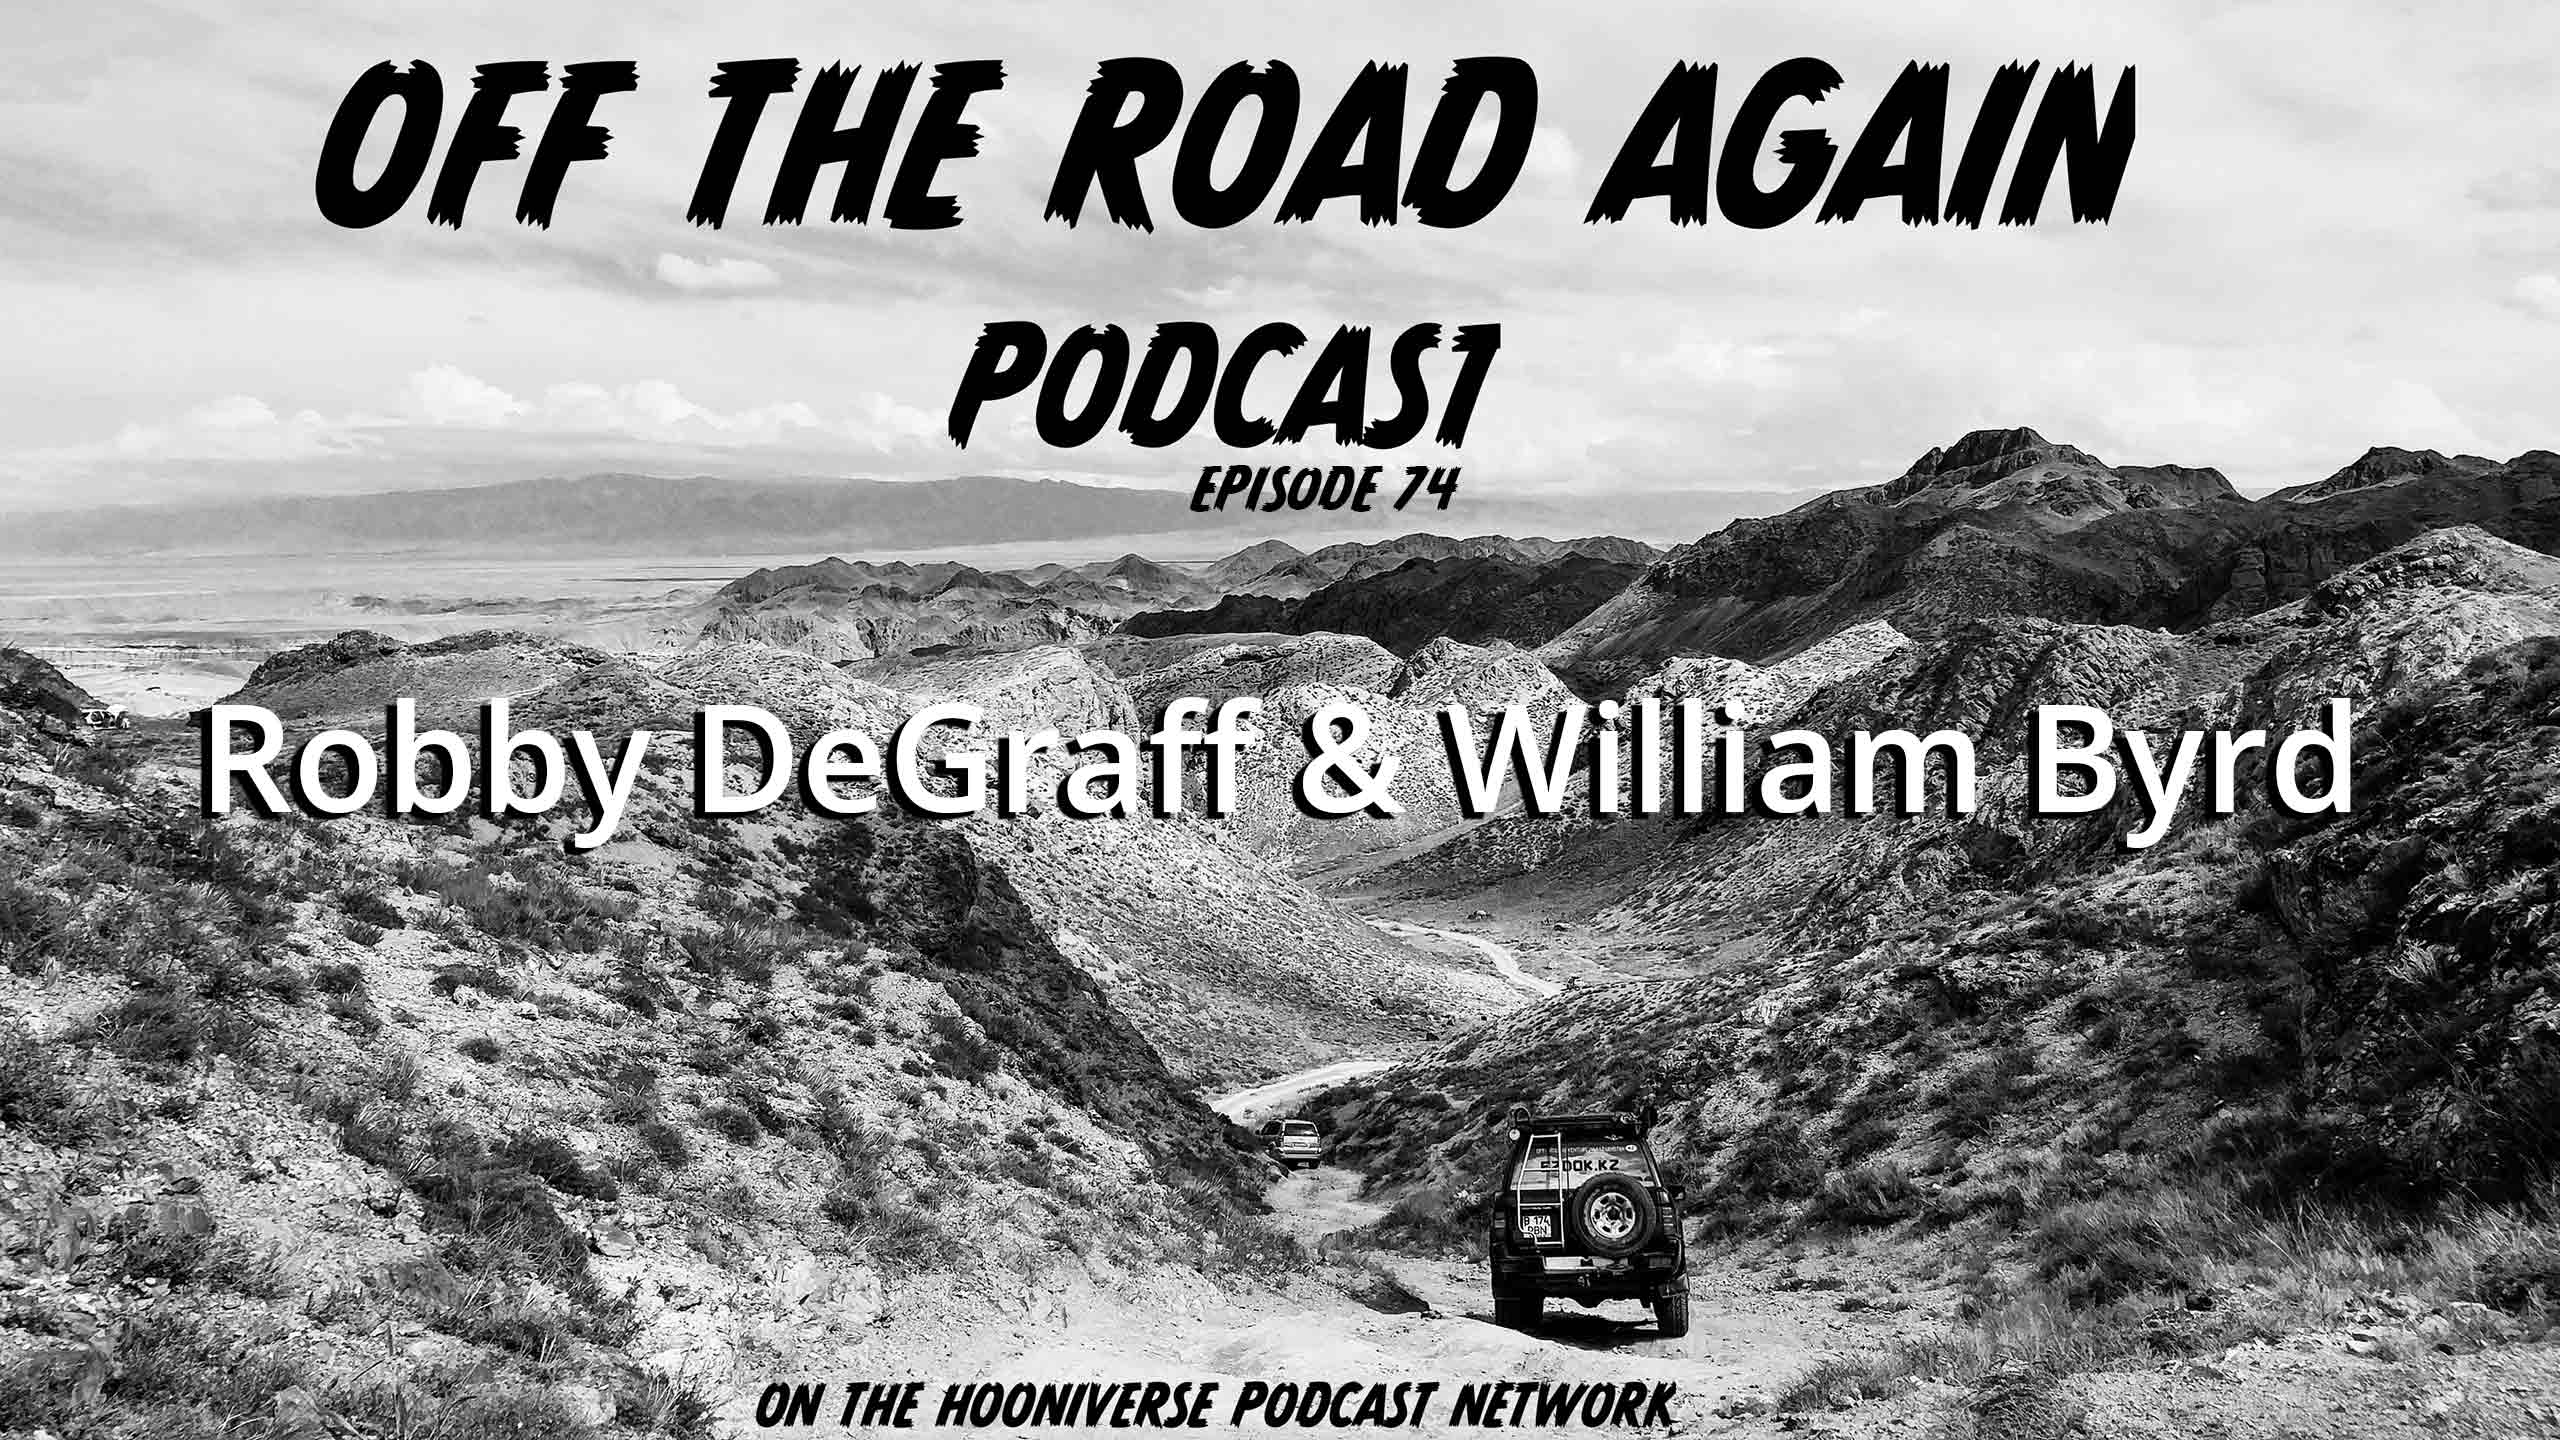 Robby-DeGraff-William-Byrd-Off-The-Road-Again-Podcast-Episode-74